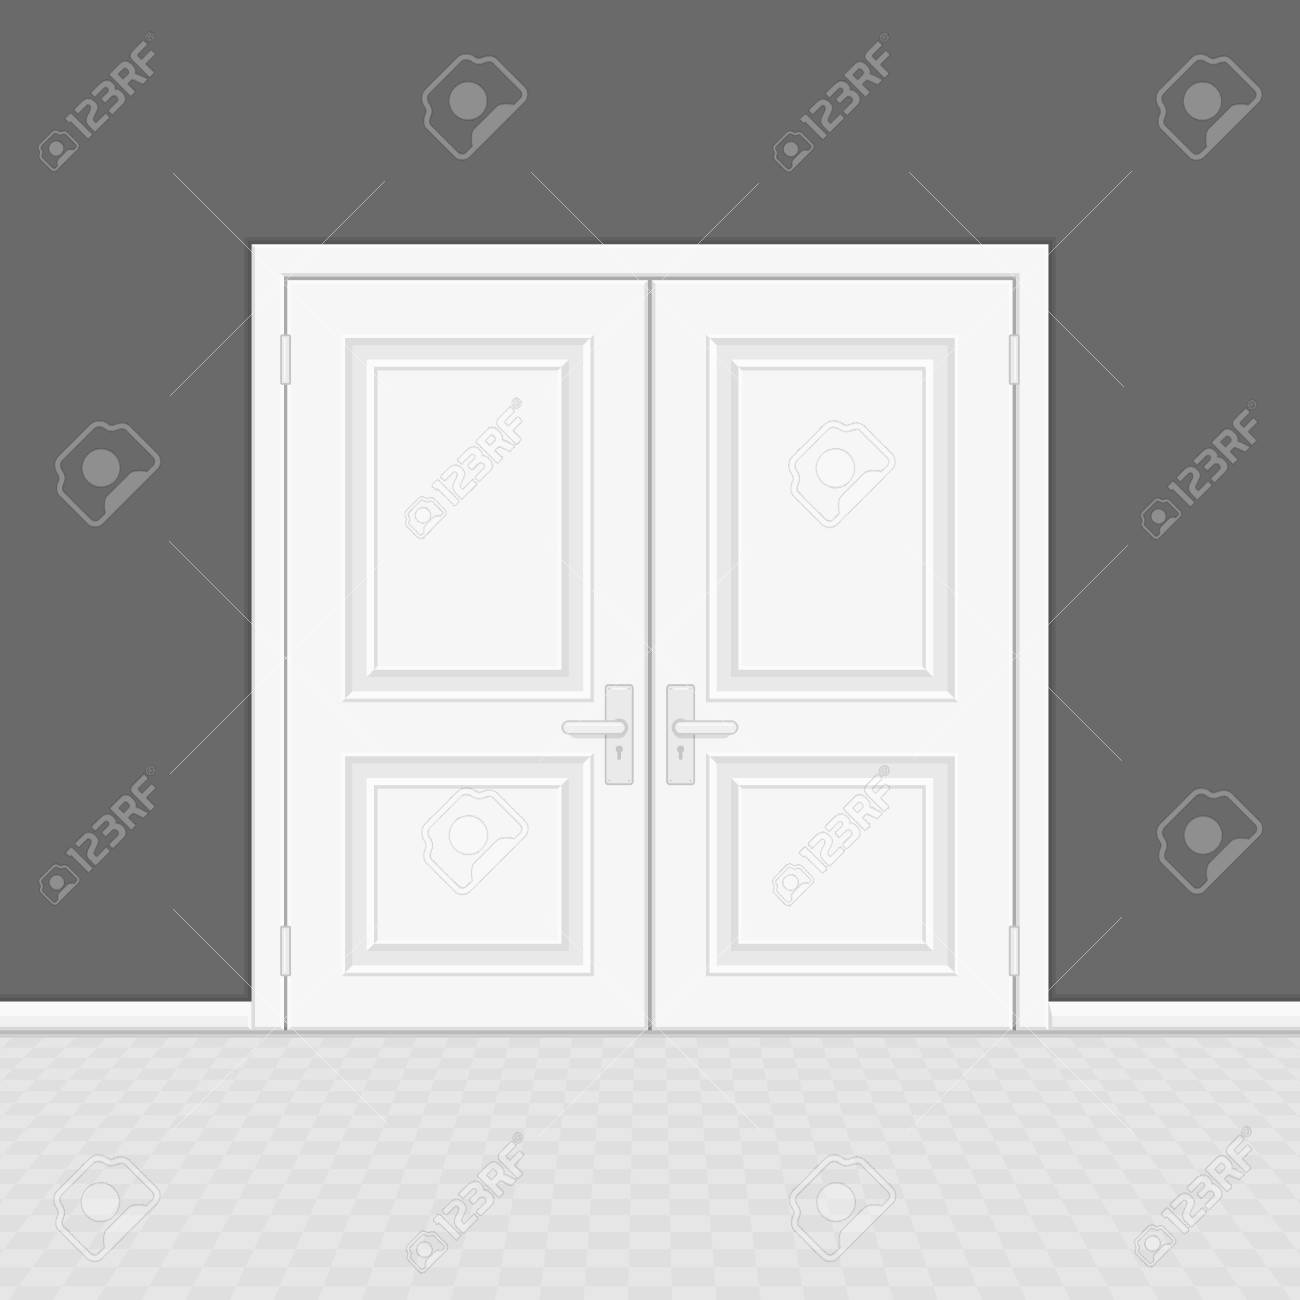 Closed Entrance Door With Frame Realistic Style White Interior